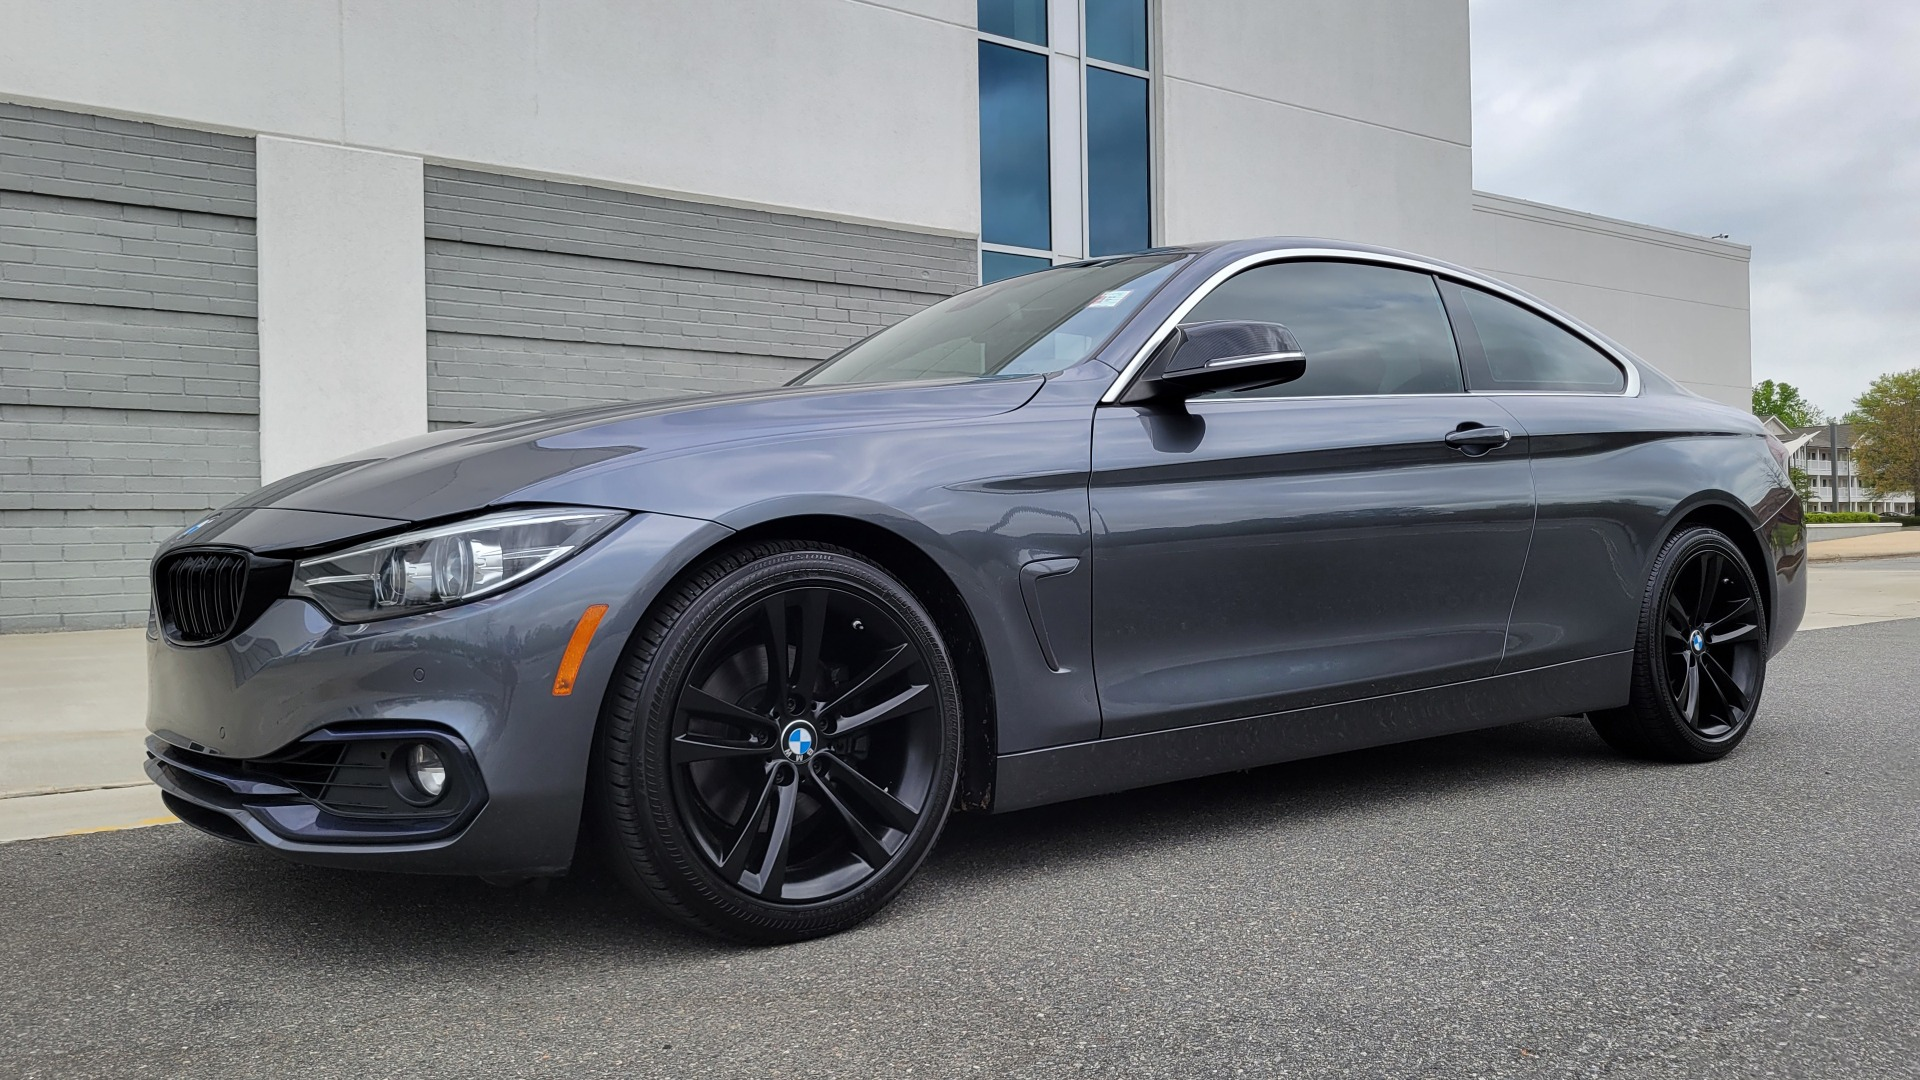 Used 2019 BMW 4 SERIES 430I COUPE 2.0L / RWD / DRVR ASST / CONV PKG / SUNROOF / REARVIEW for sale $32,295 at Formula Imports in Charlotte NC 28227 2